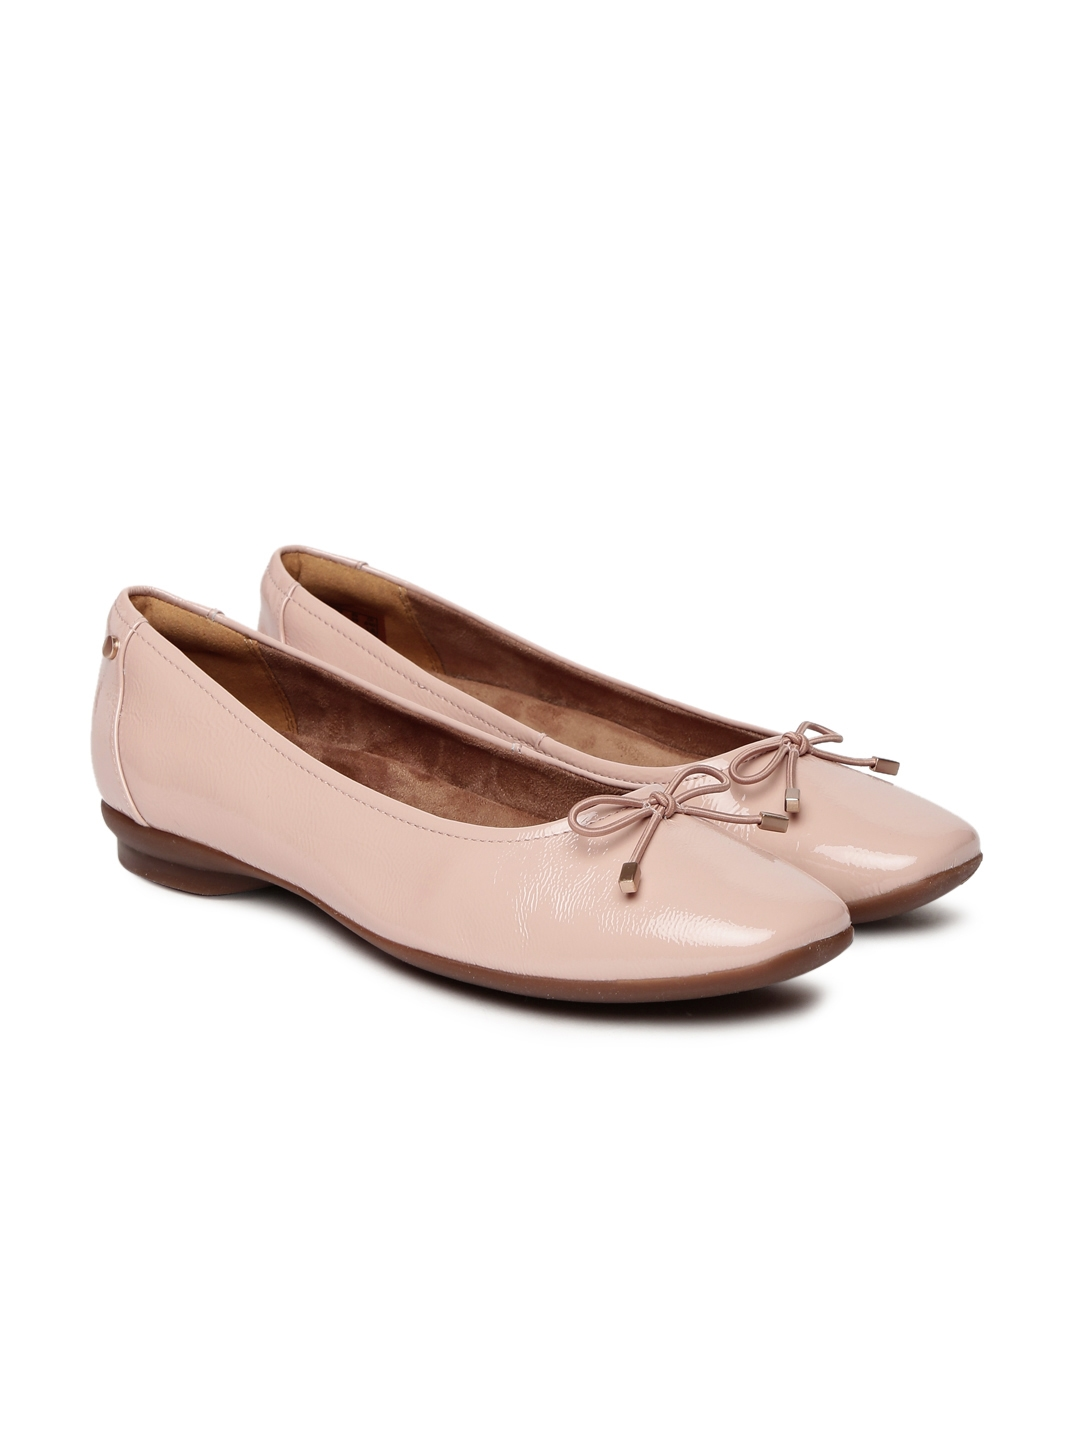 2d416a715f Buy Clarks Women Pink Shimmery Leather Ballerinas - Flats for Women ...